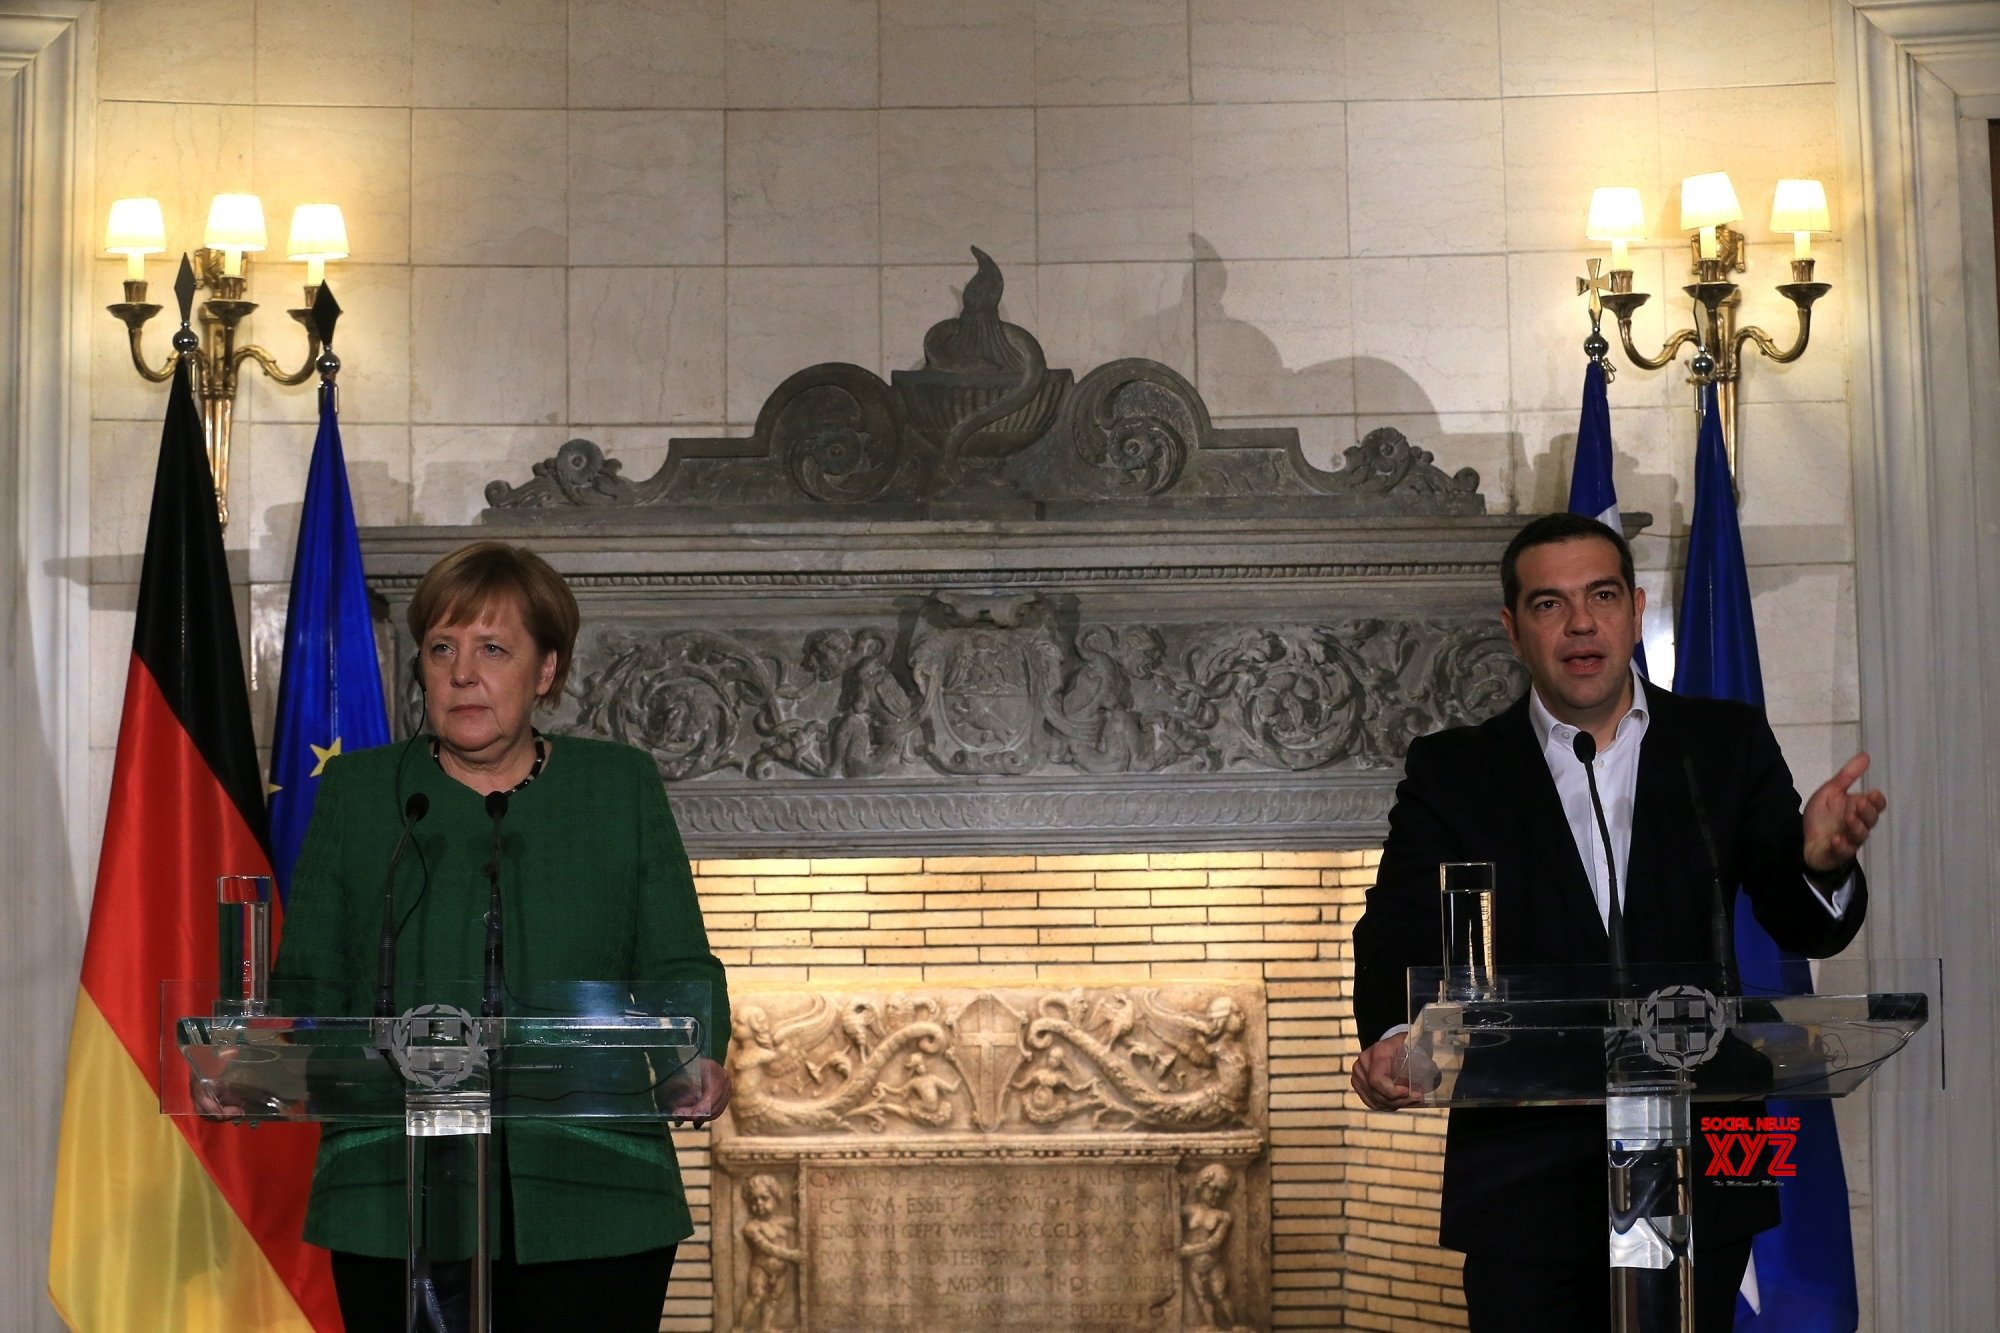 GREECE - ATHENS - GERMANY - MERKEL - VISIT #Gallery